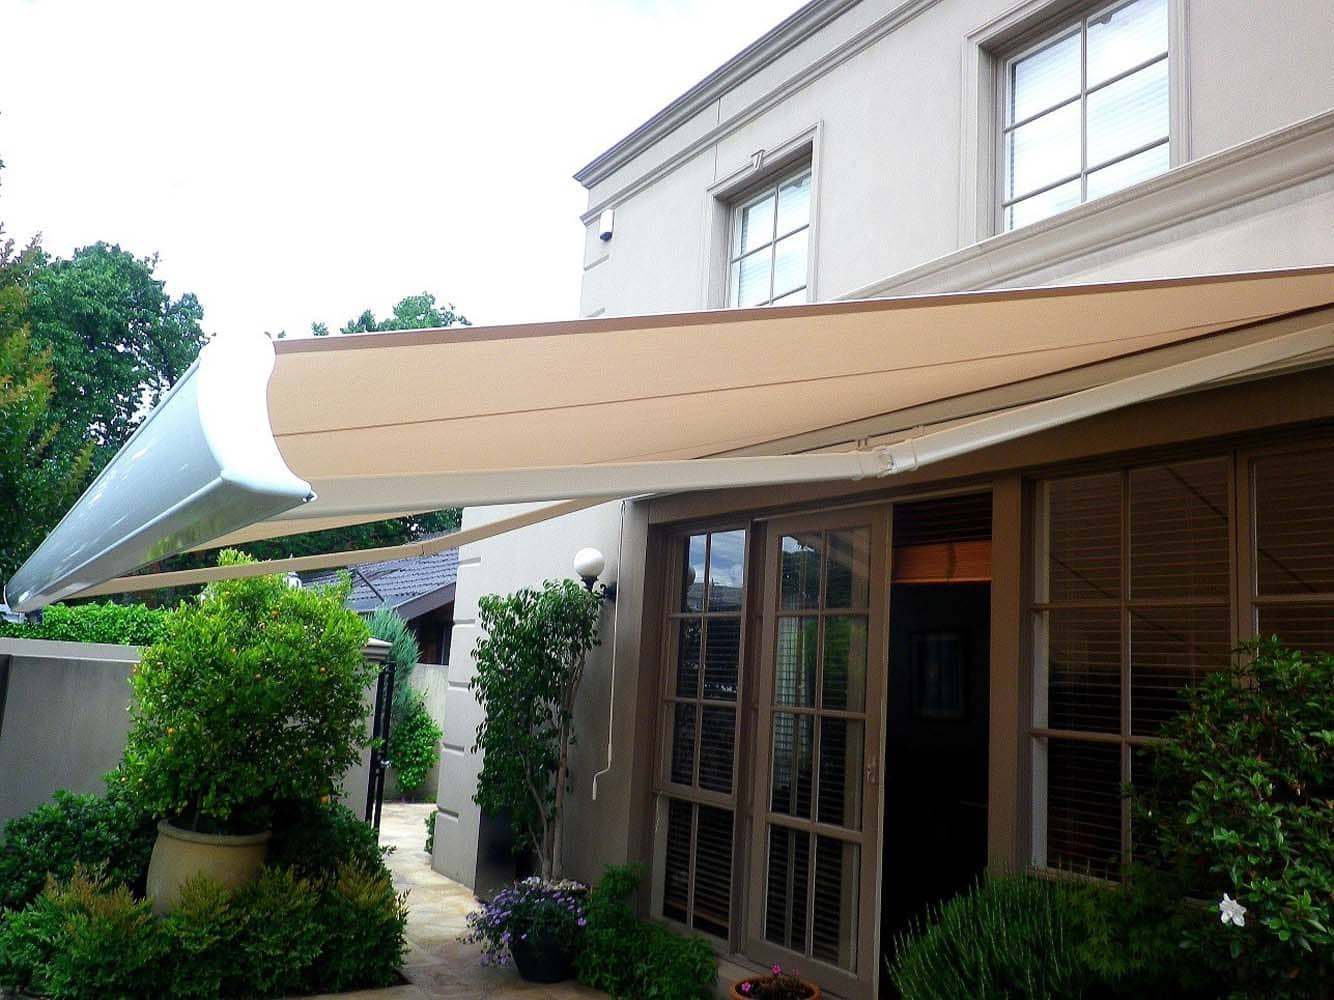 OUTDOOR AWNING 12